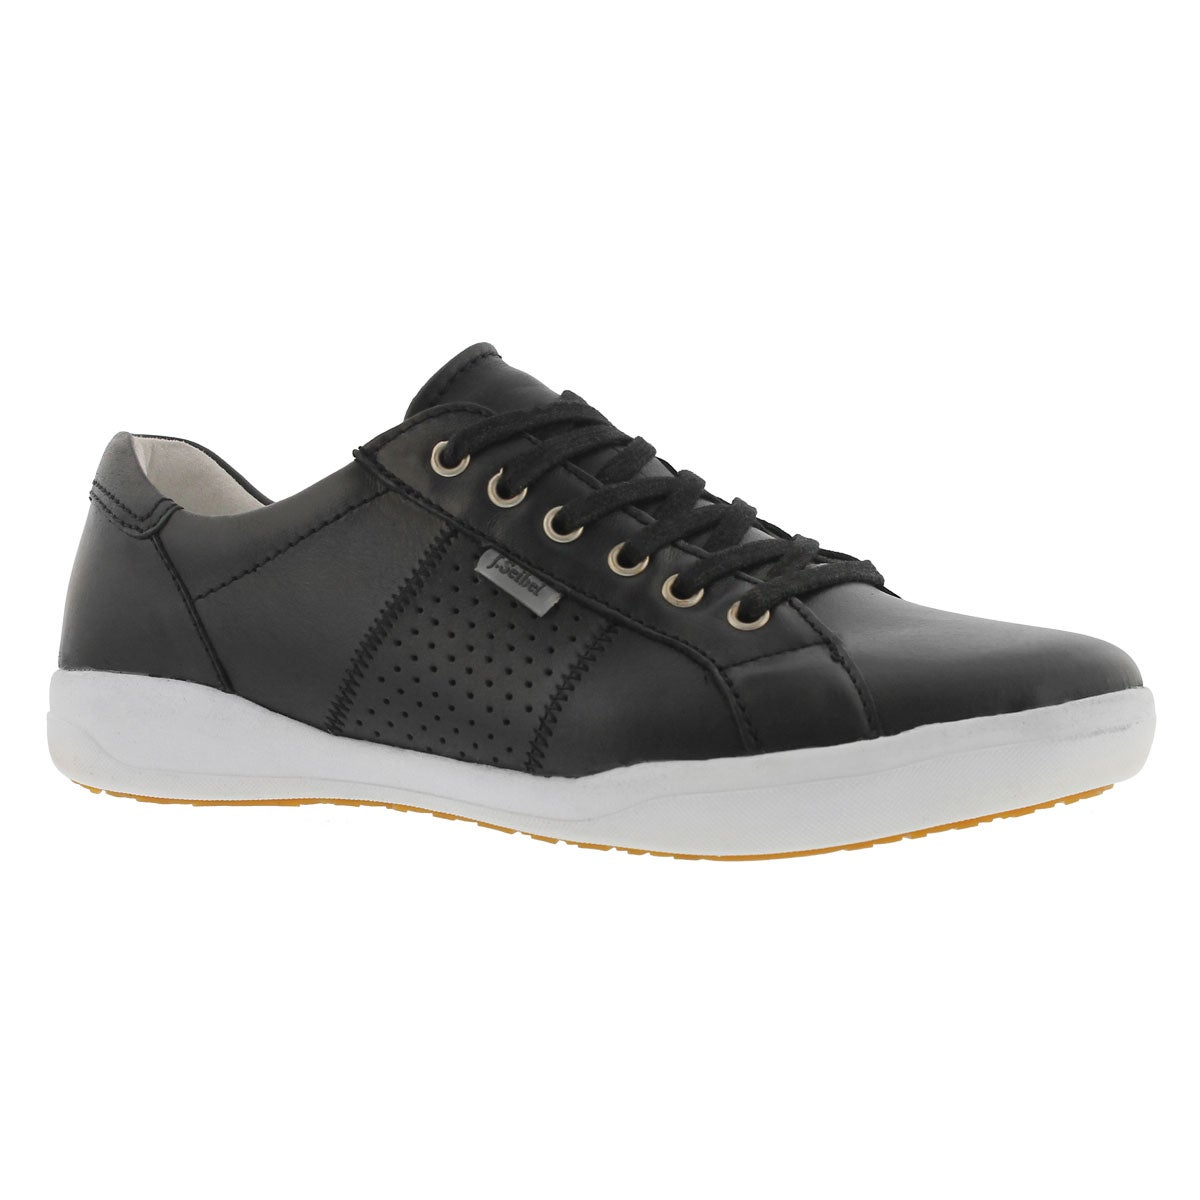 Women's SINA 41 black lace up casual sneaker